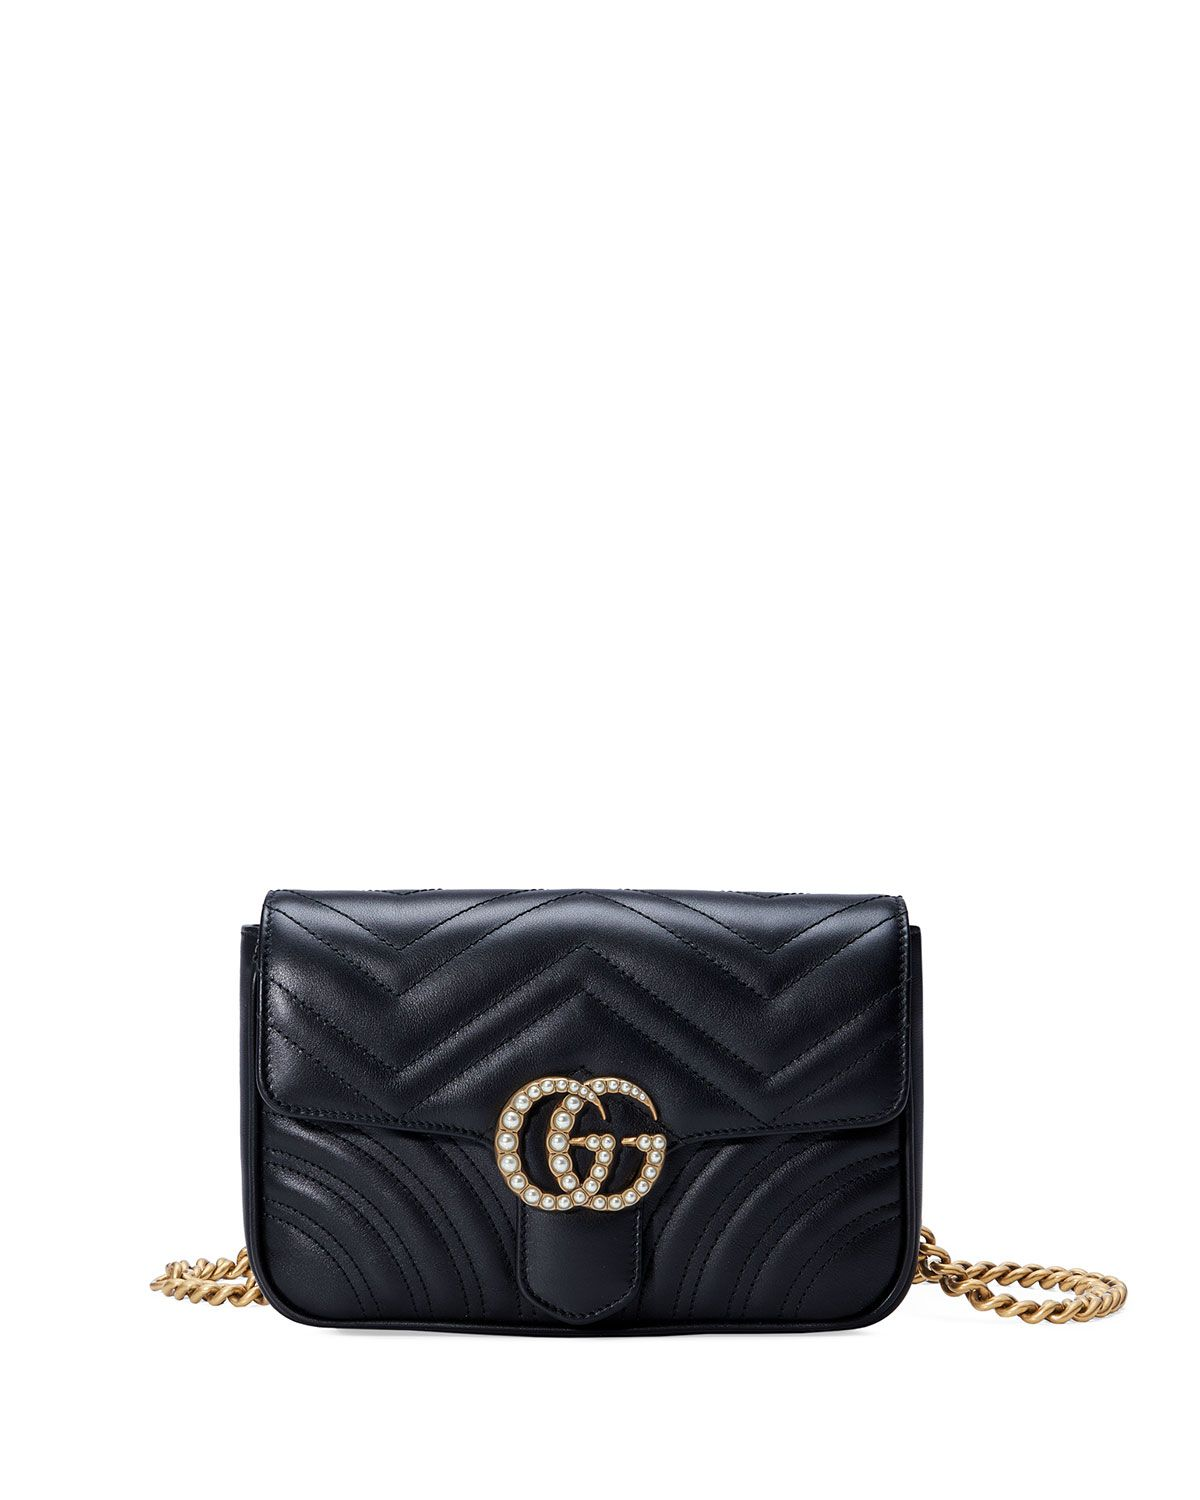 127306f31e77 GG Marmont Matelassé Flap Belt Bag, Black | My style | Gucci ...